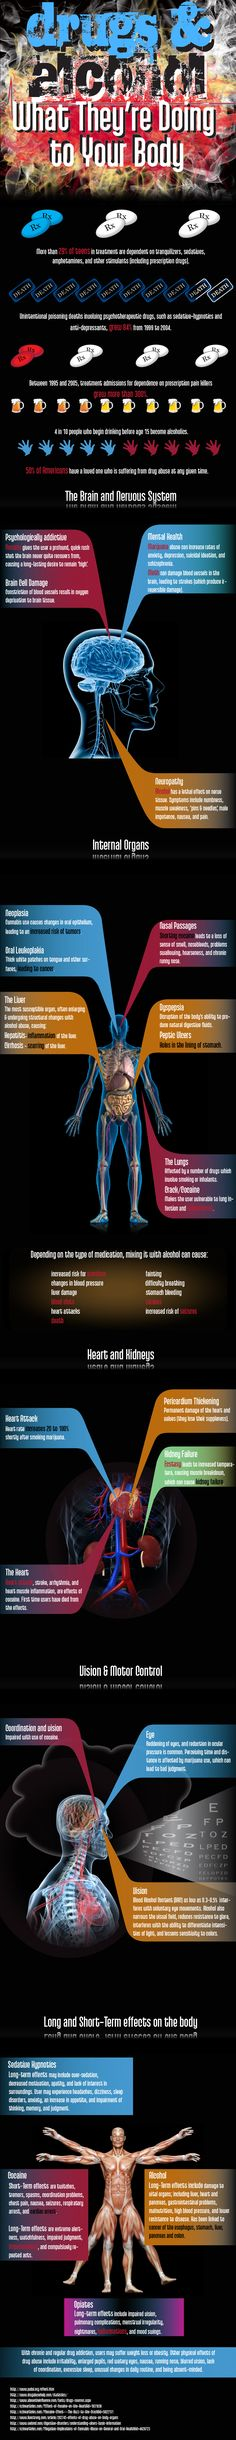 Drugs + Your Body #infographic #substanceabuse